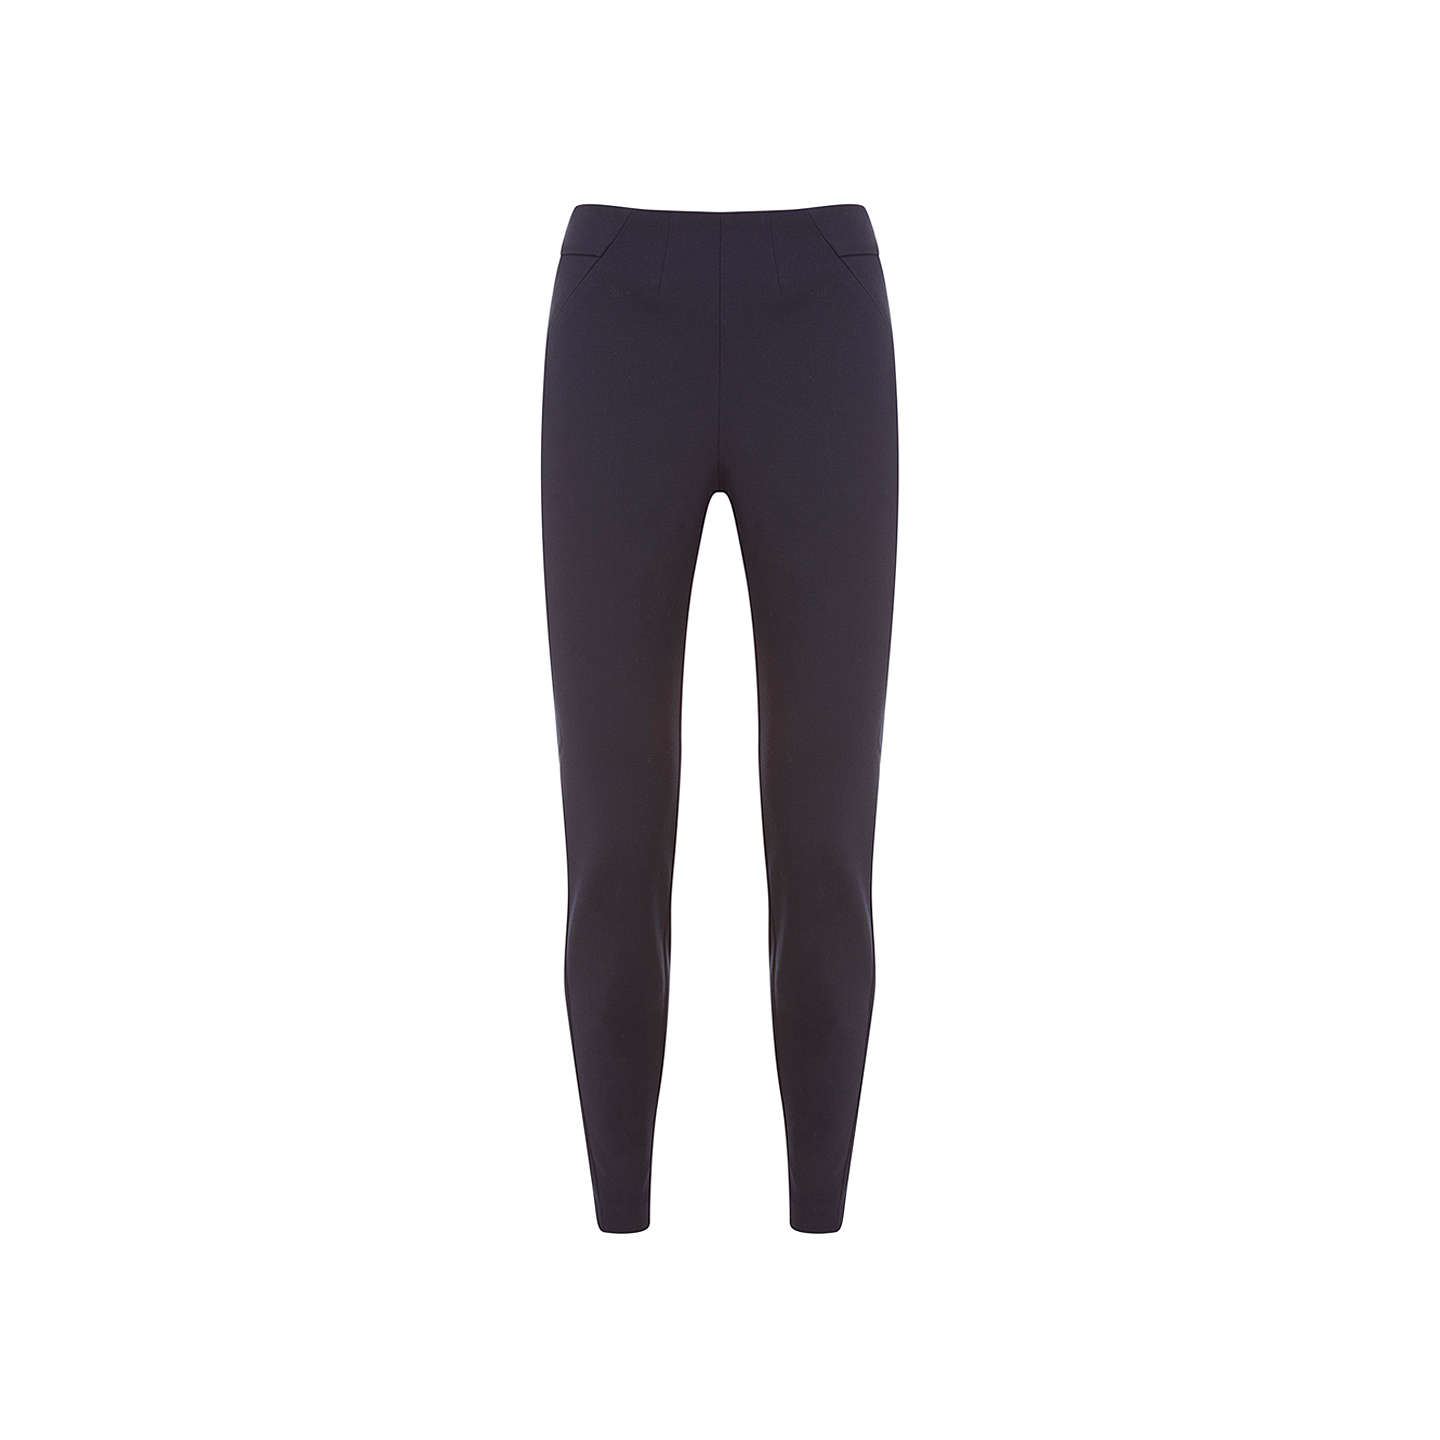 BuyMint Velvet Contour Treggings, Dark Blue, 6 Online at johnlewis.com